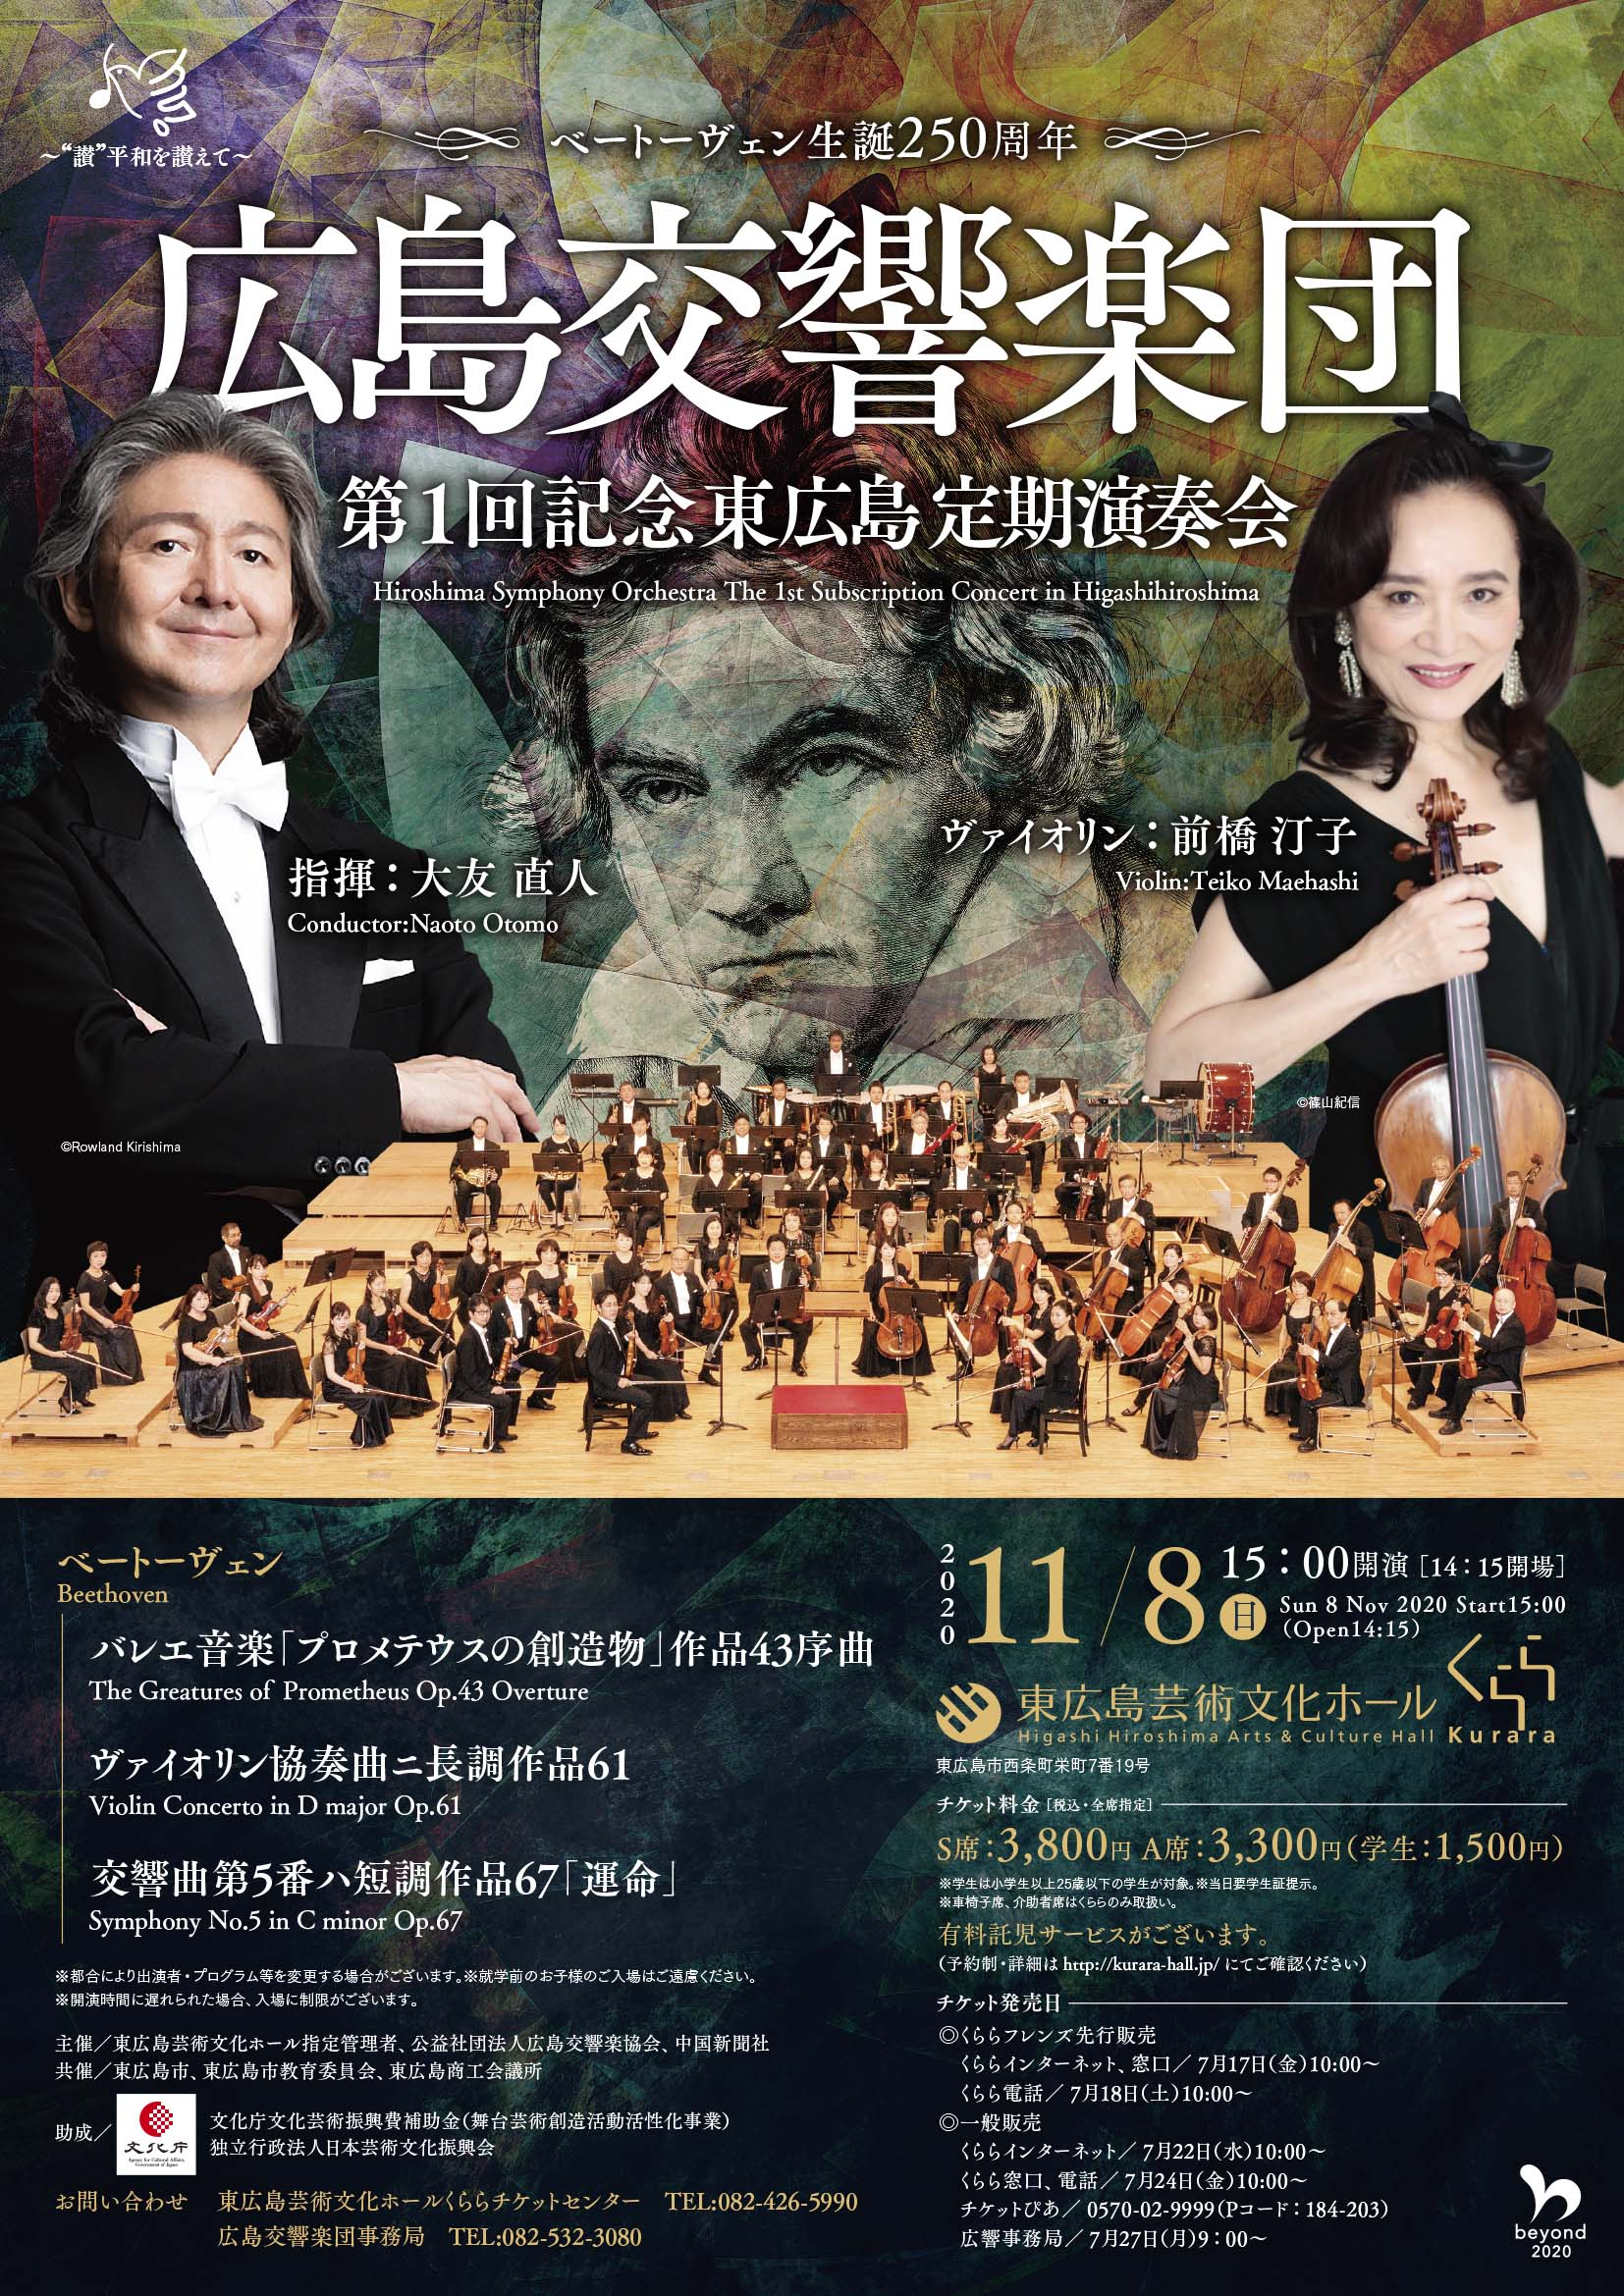 The 1st Subscription Concert in HIGASHIHIROSHIMA